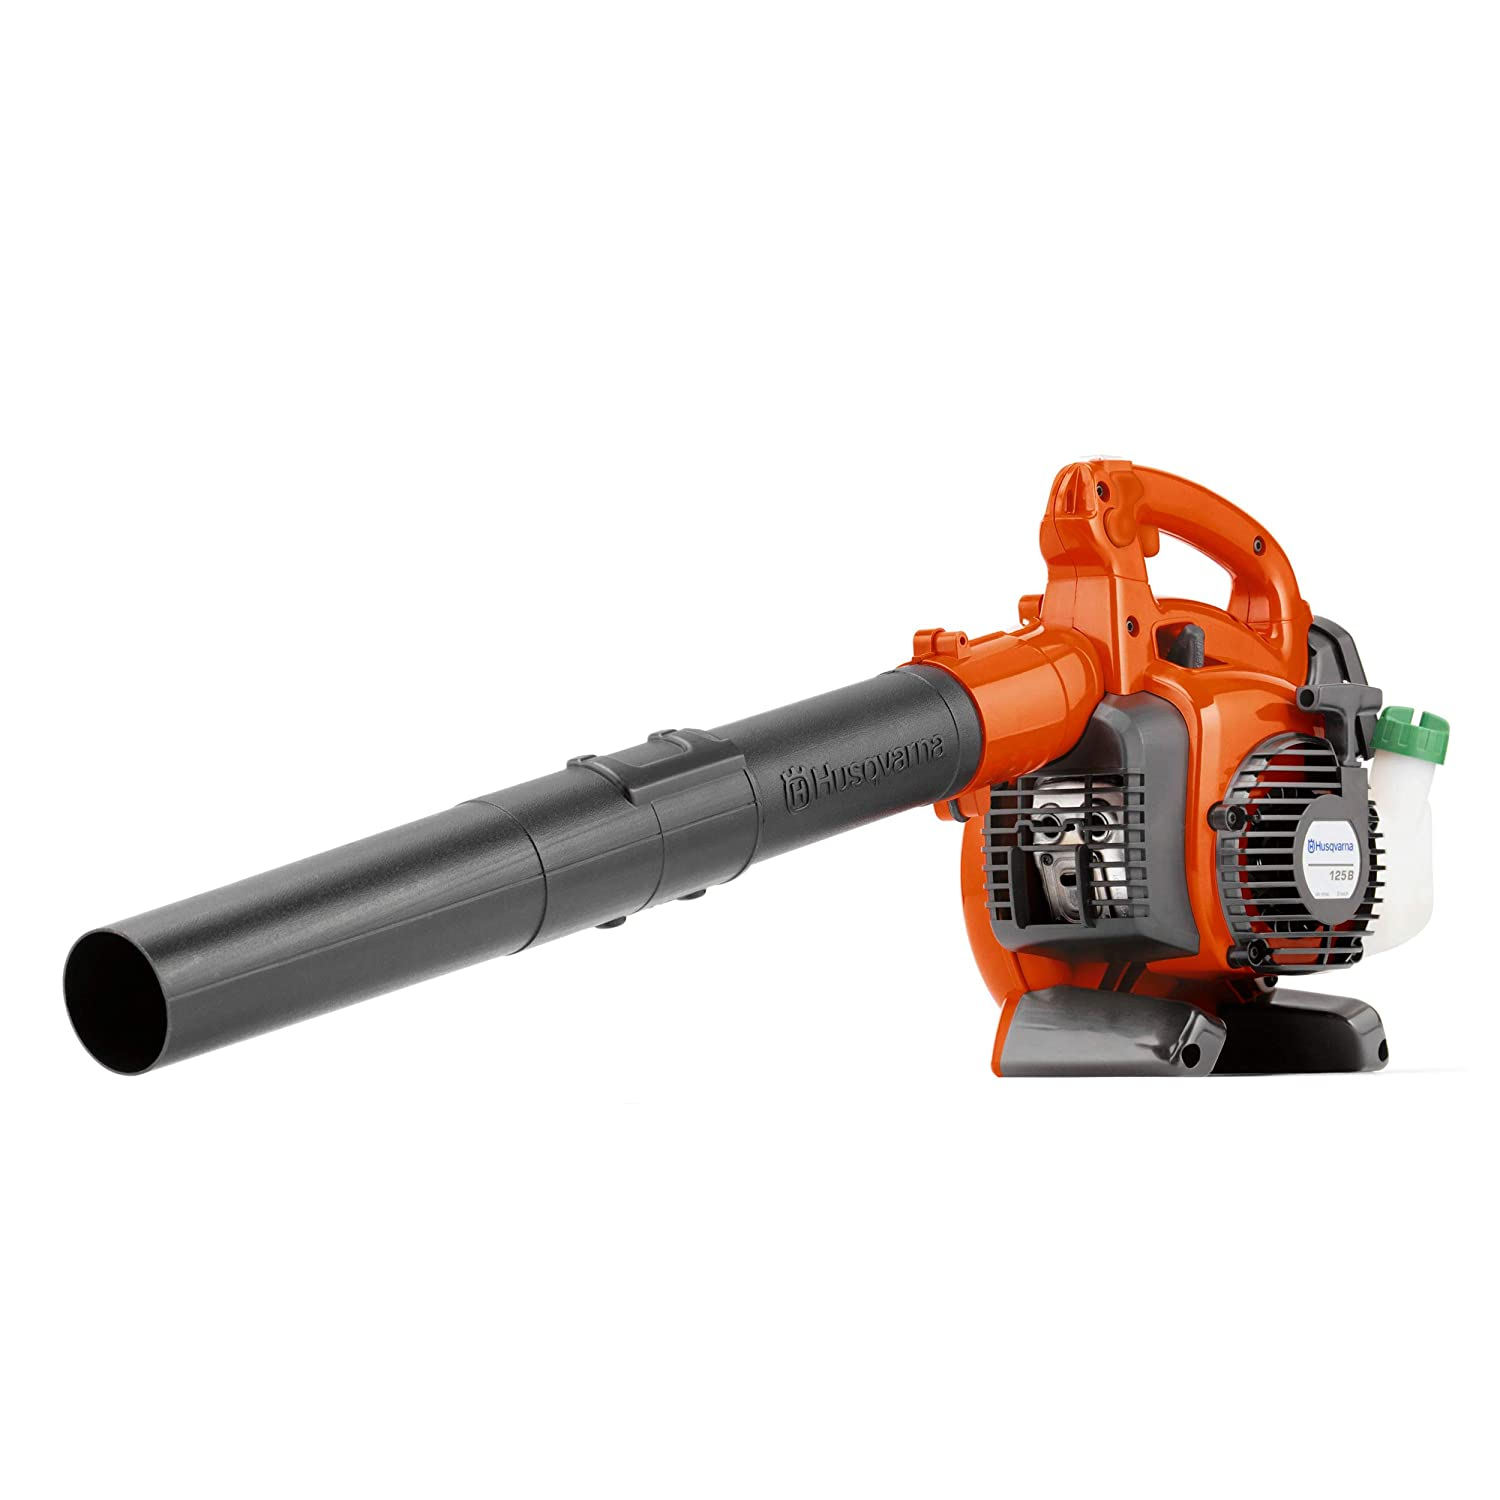 Top 10 Best Leaf Blowers (2020 Reviews & Buying Guide) 10